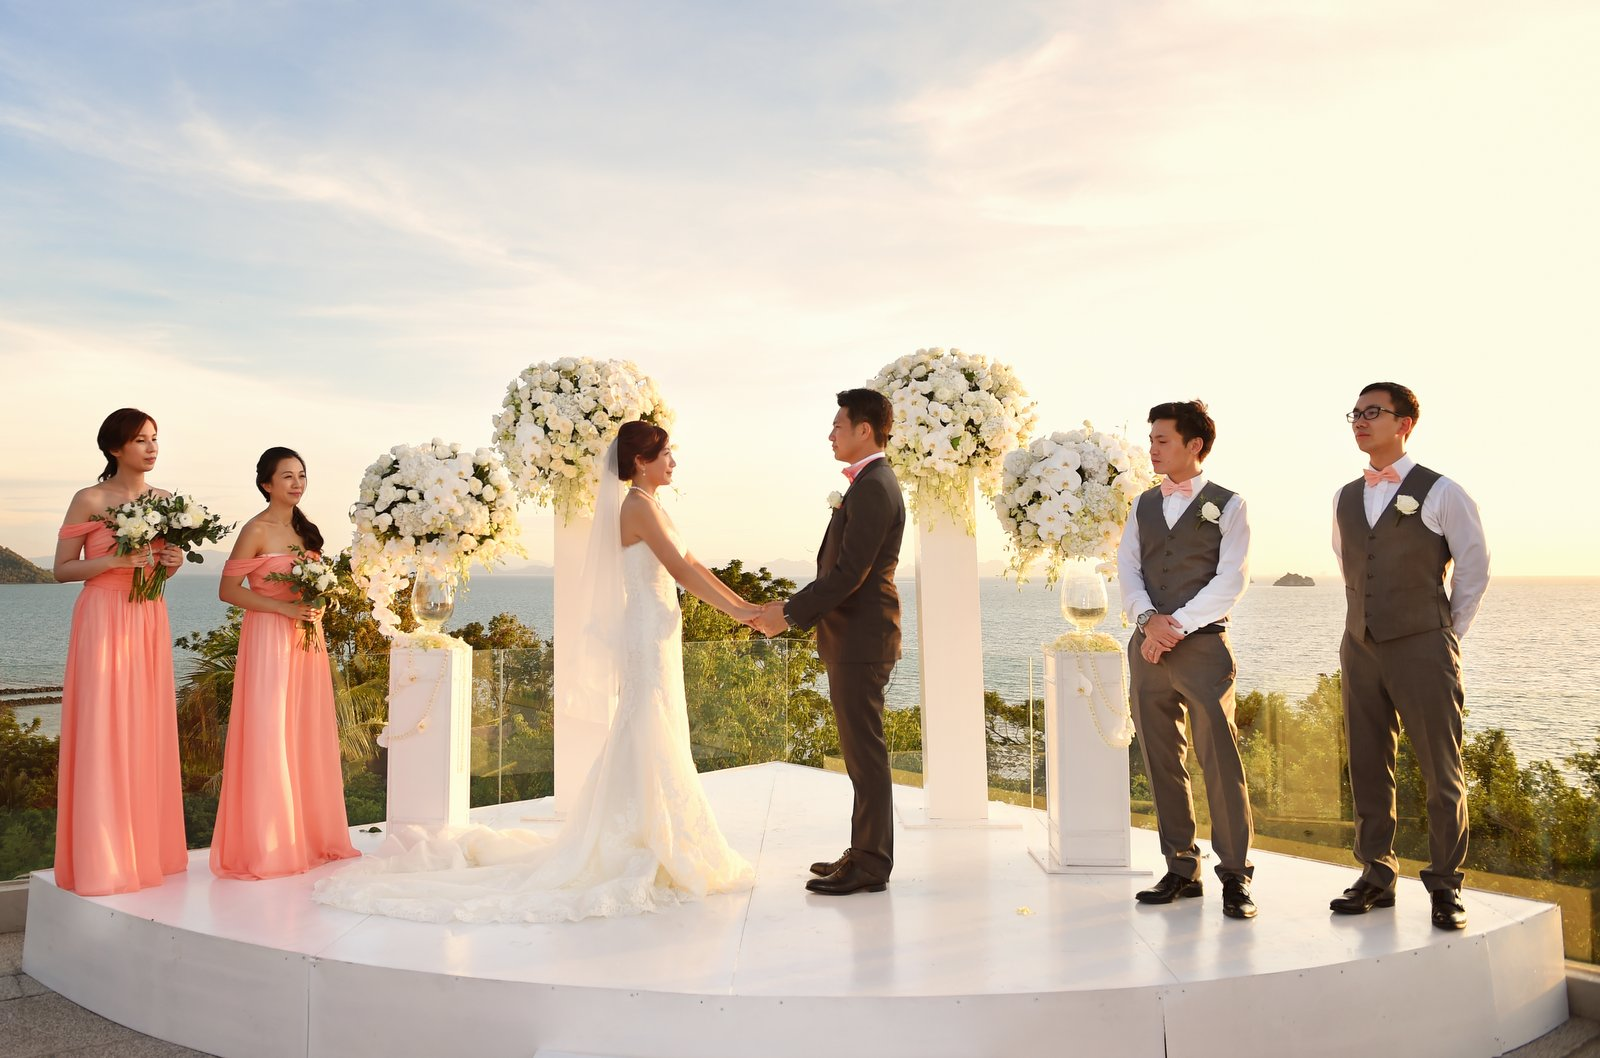 Beautiful wedding ceremony in Koh Samui, Thailand